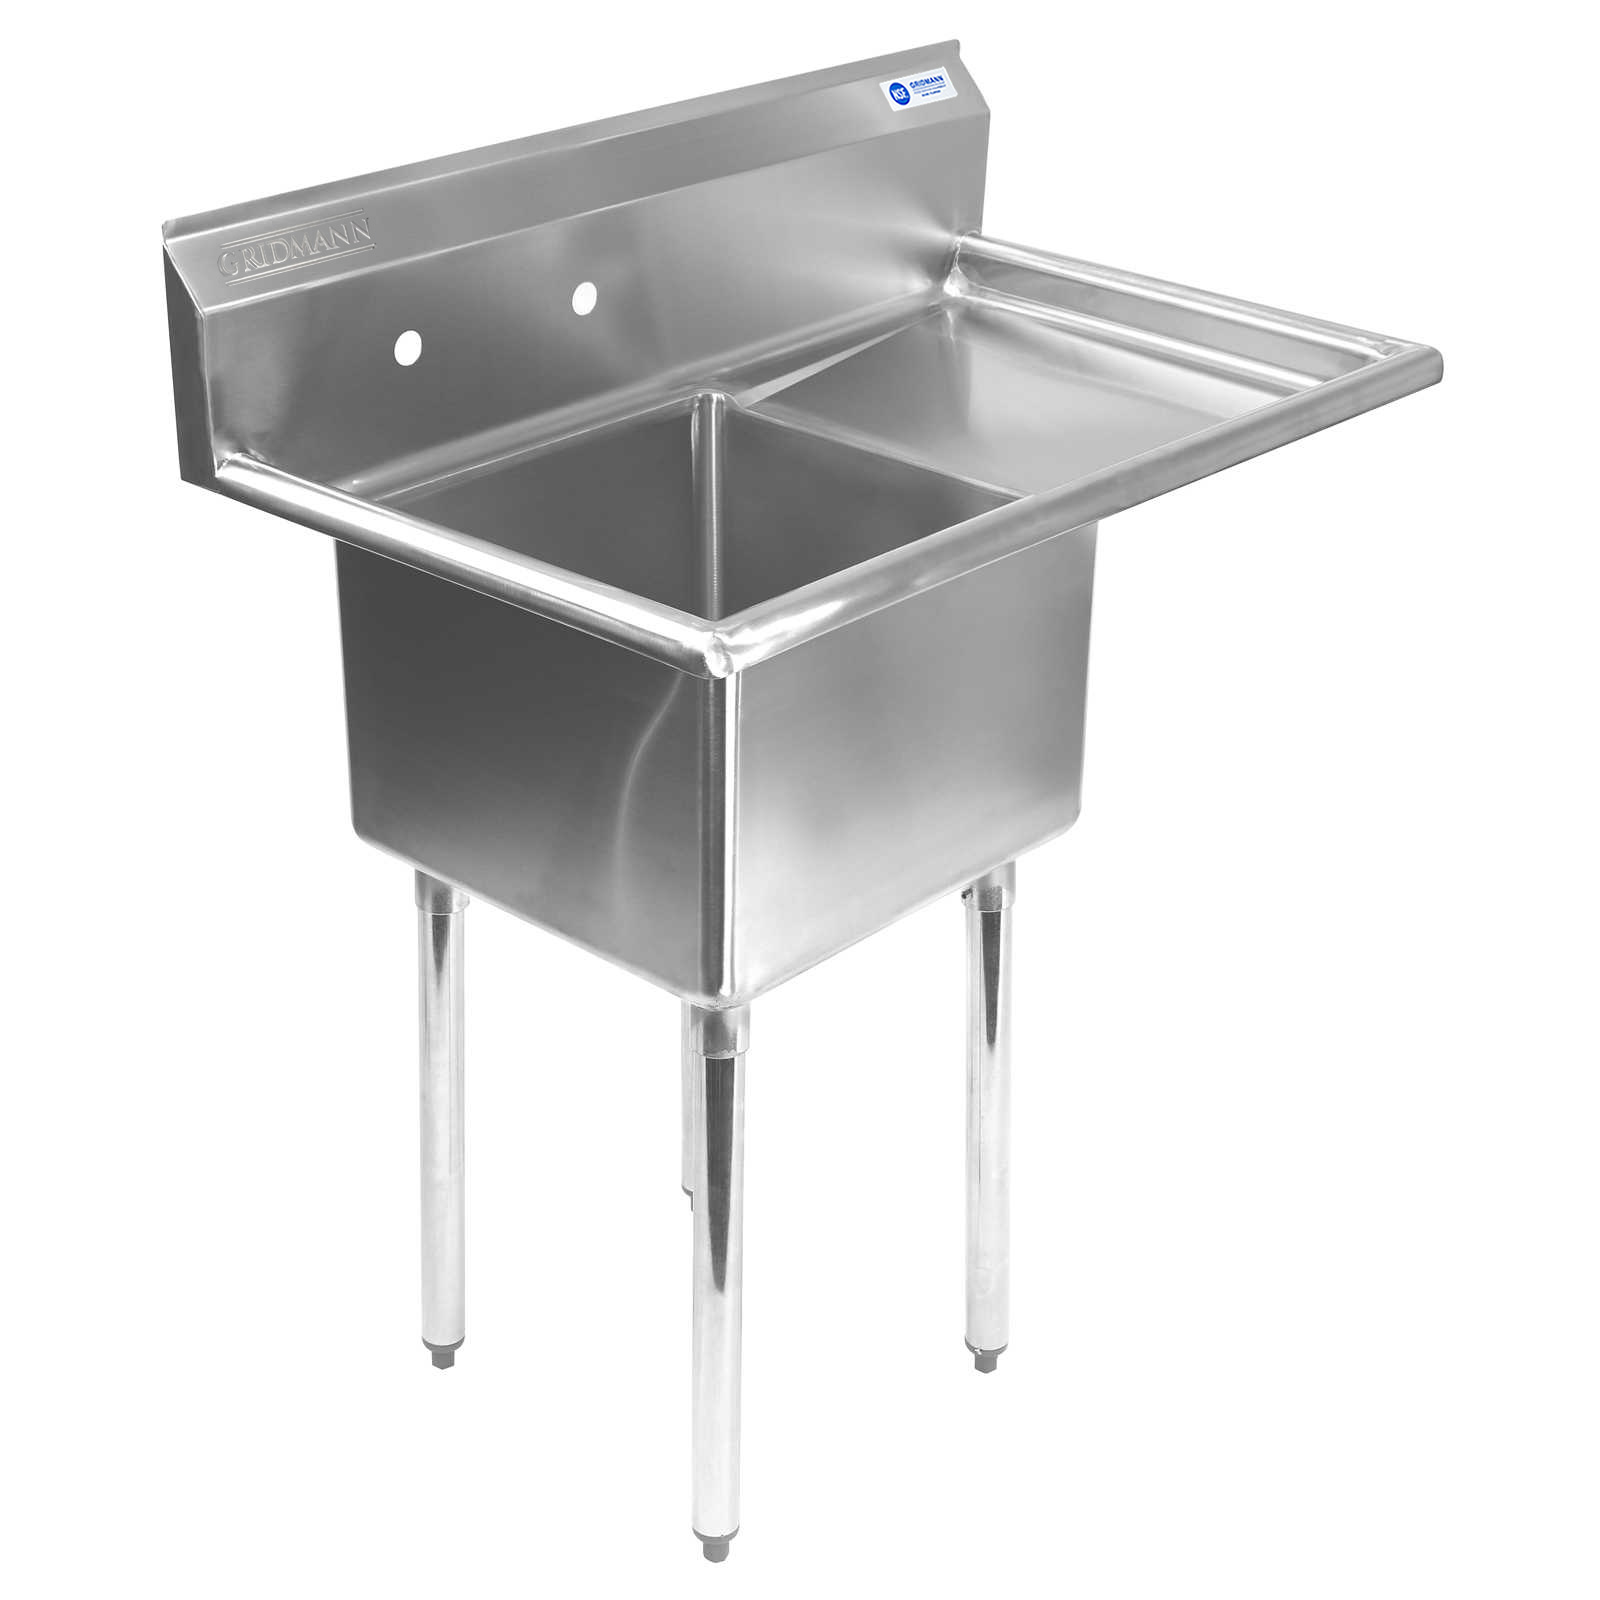 Gridmann 1 Compartment NSF Stainless Steel Commercial Kitchen Prep U0026  Utility Sink W/ Drainboard